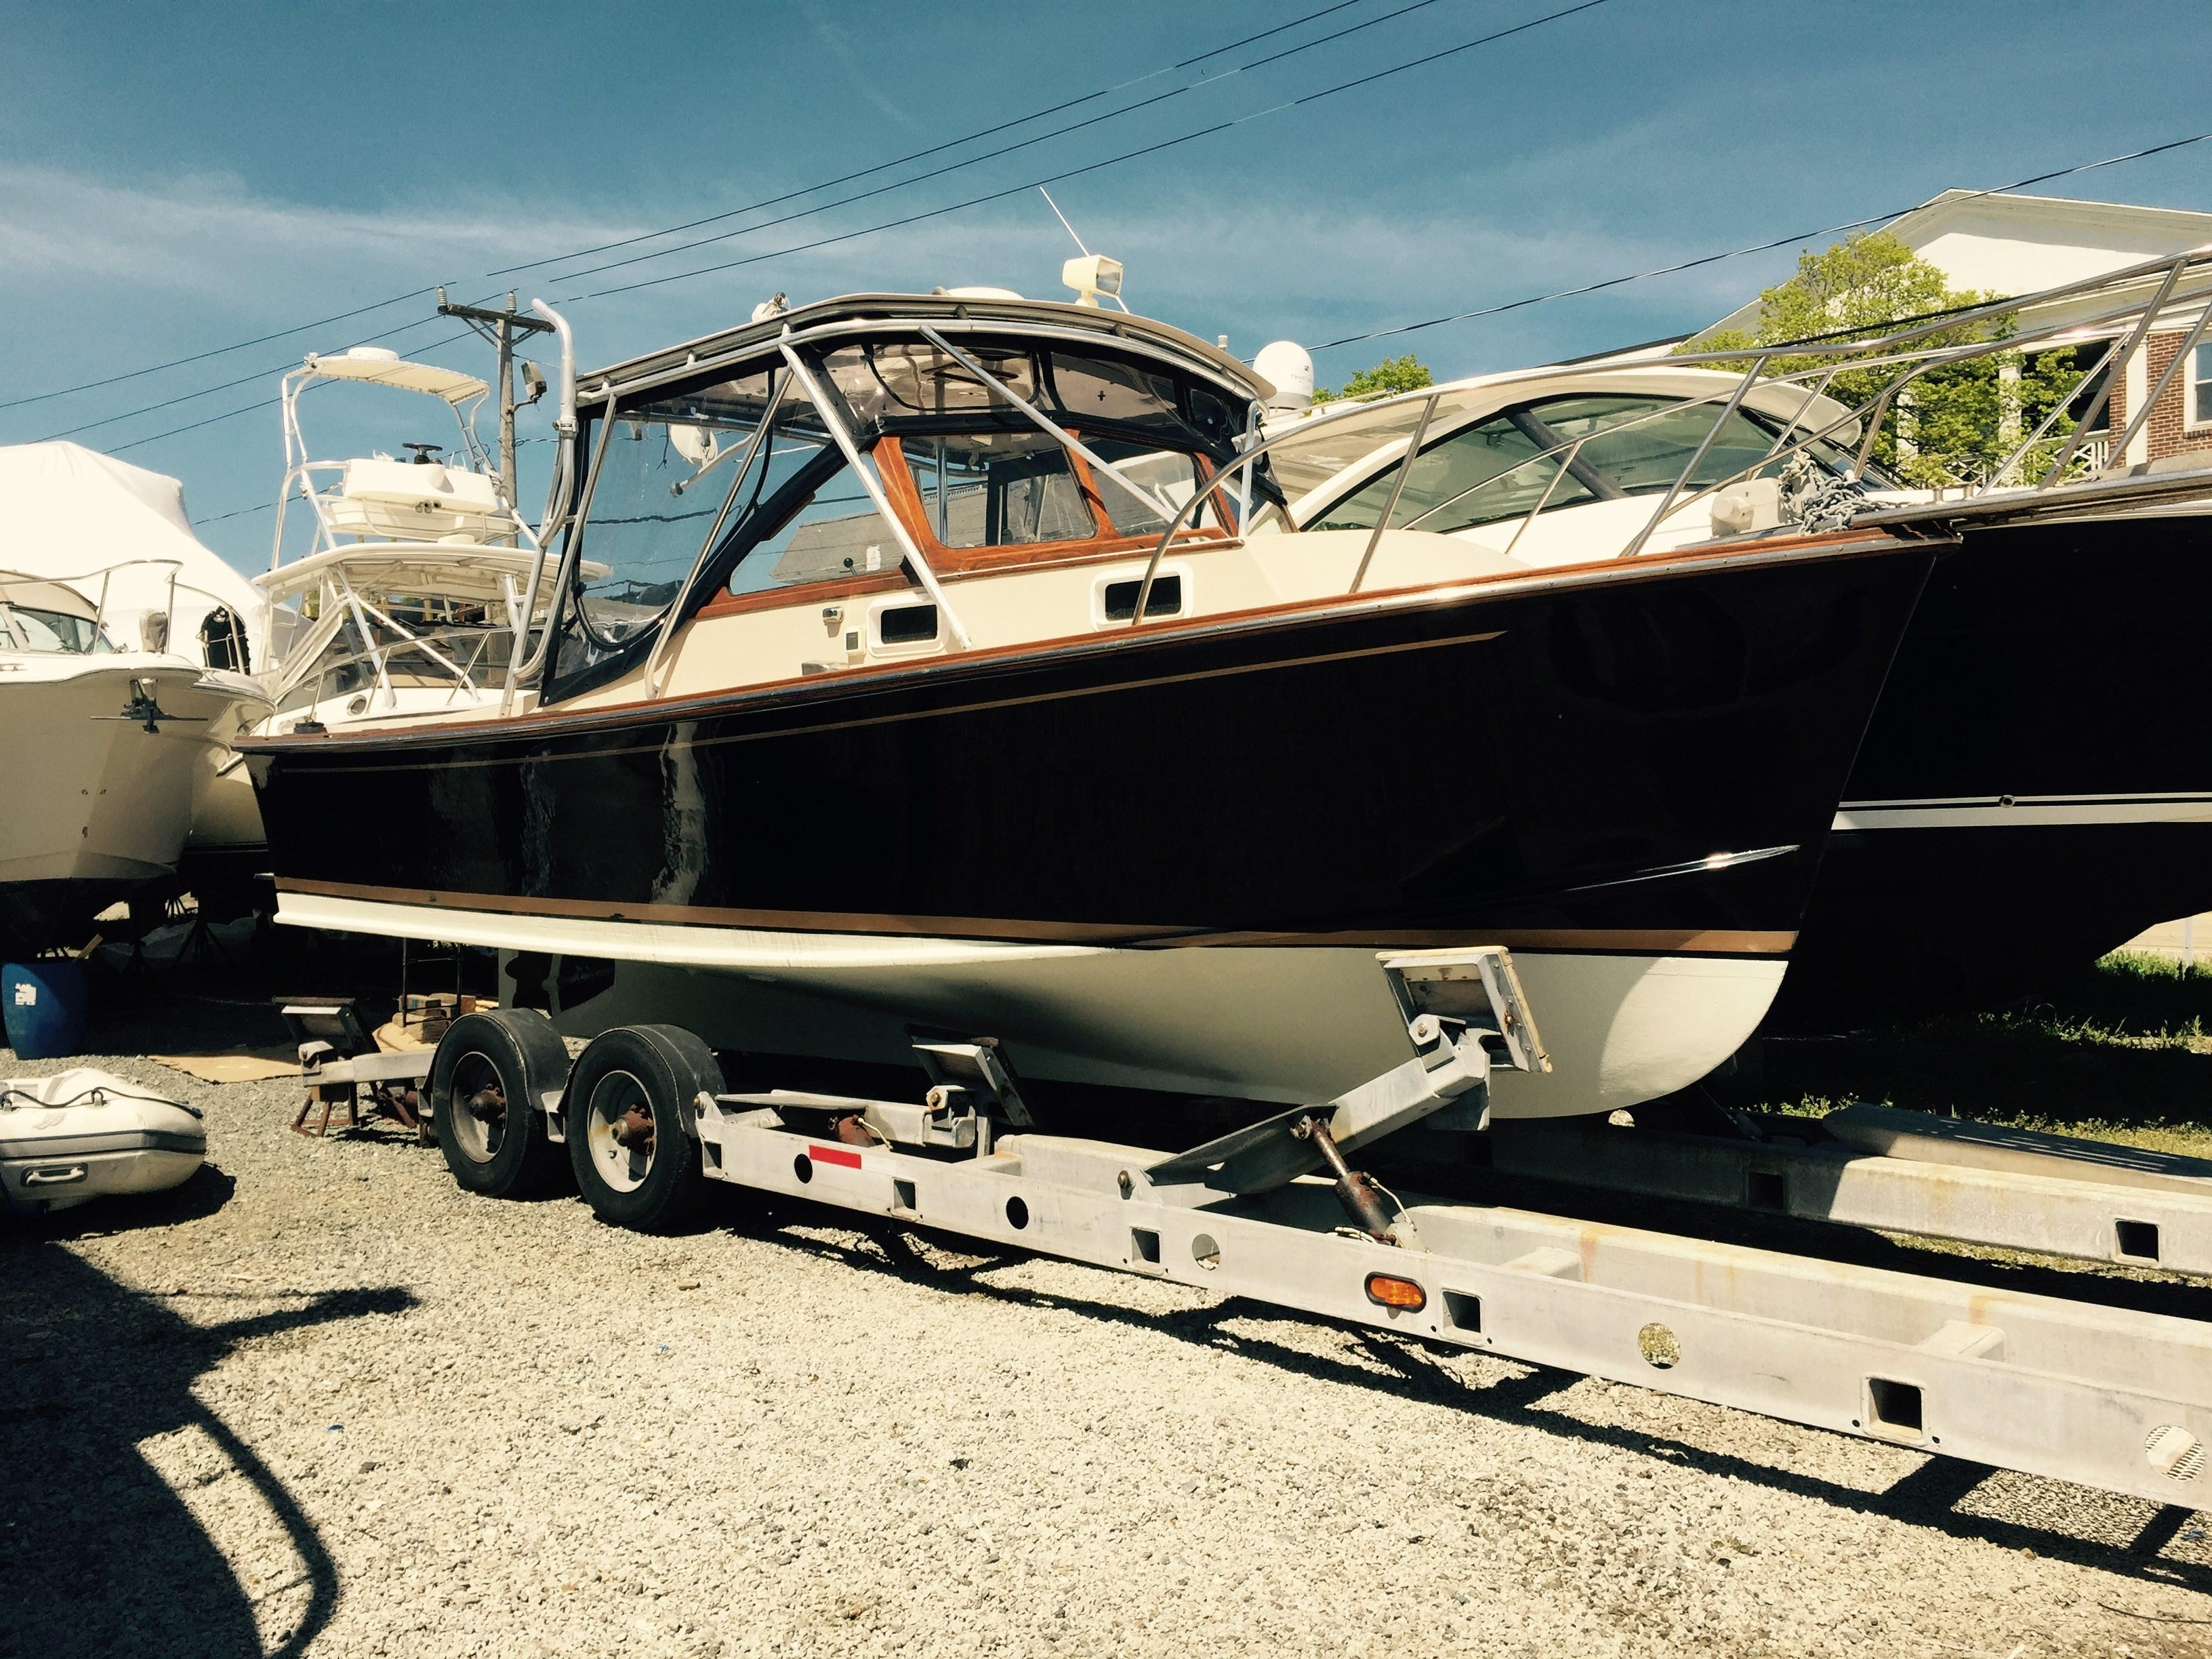 1987 Fortier Hardtop Power Boat For Sale - www.yachtworld.com